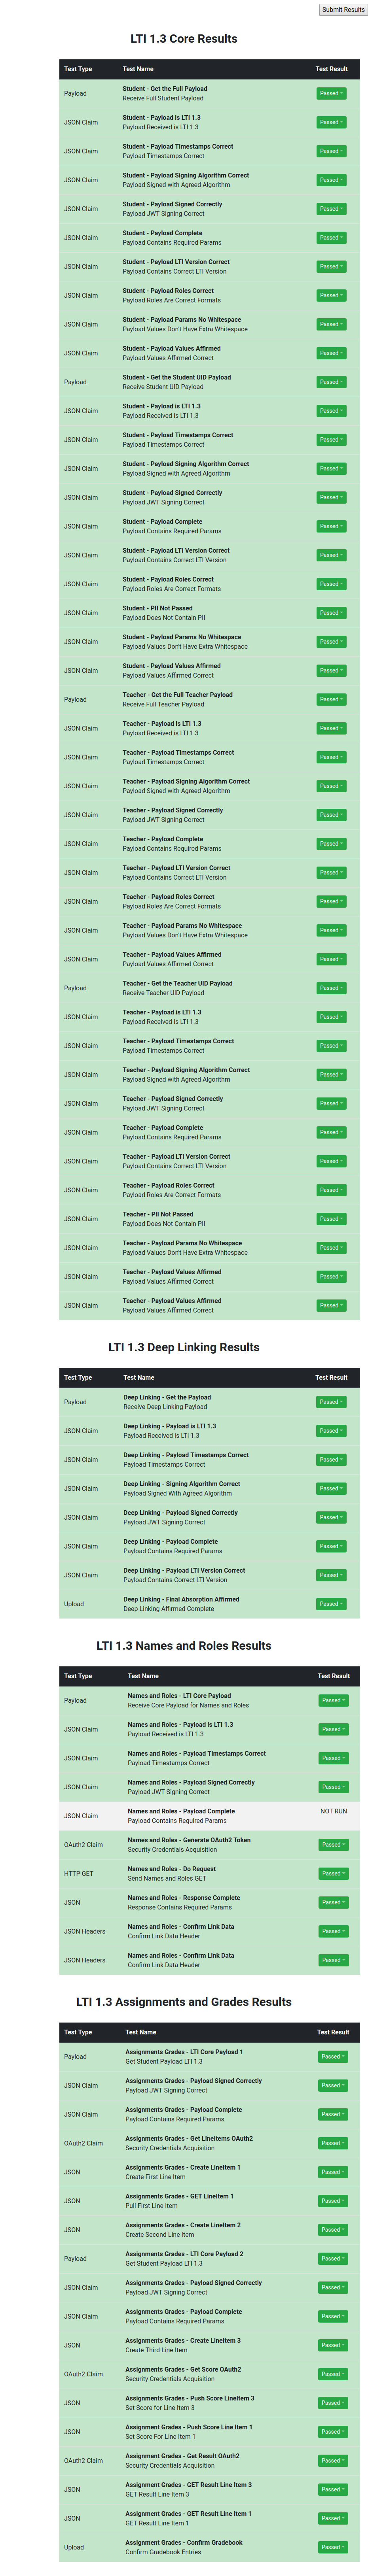 MDL-65536] LTI 1 3 post-landing issues - Moodle Tracker